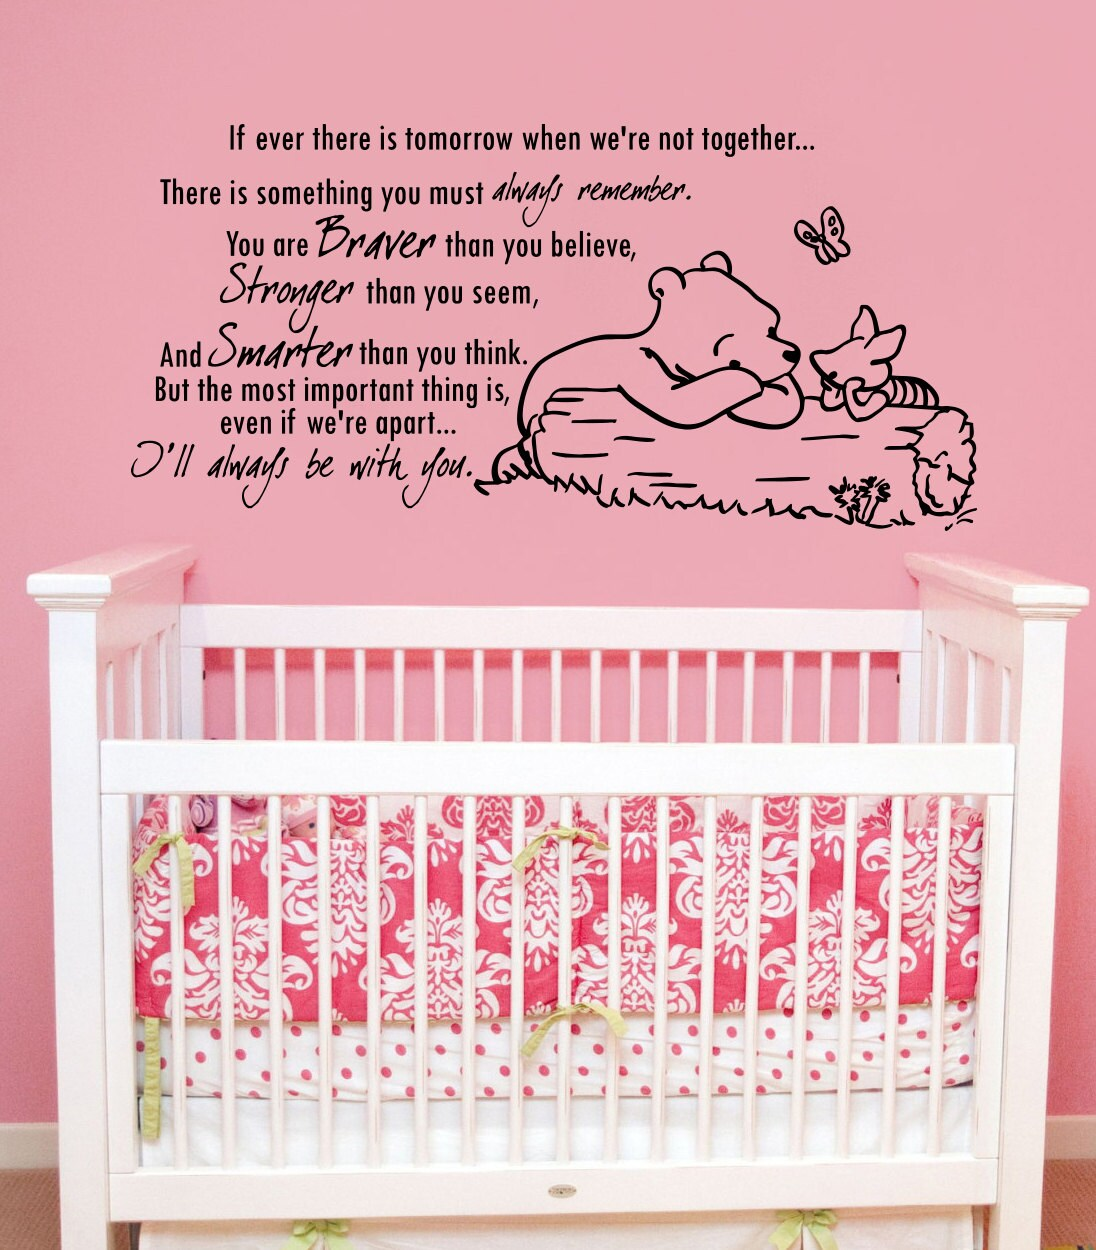 Winnie The Pooh Quote If Ever There Is A Tomorrow: Winnie The Pooh Wall Decal Quote Vinyl Sticker Decals Quotes